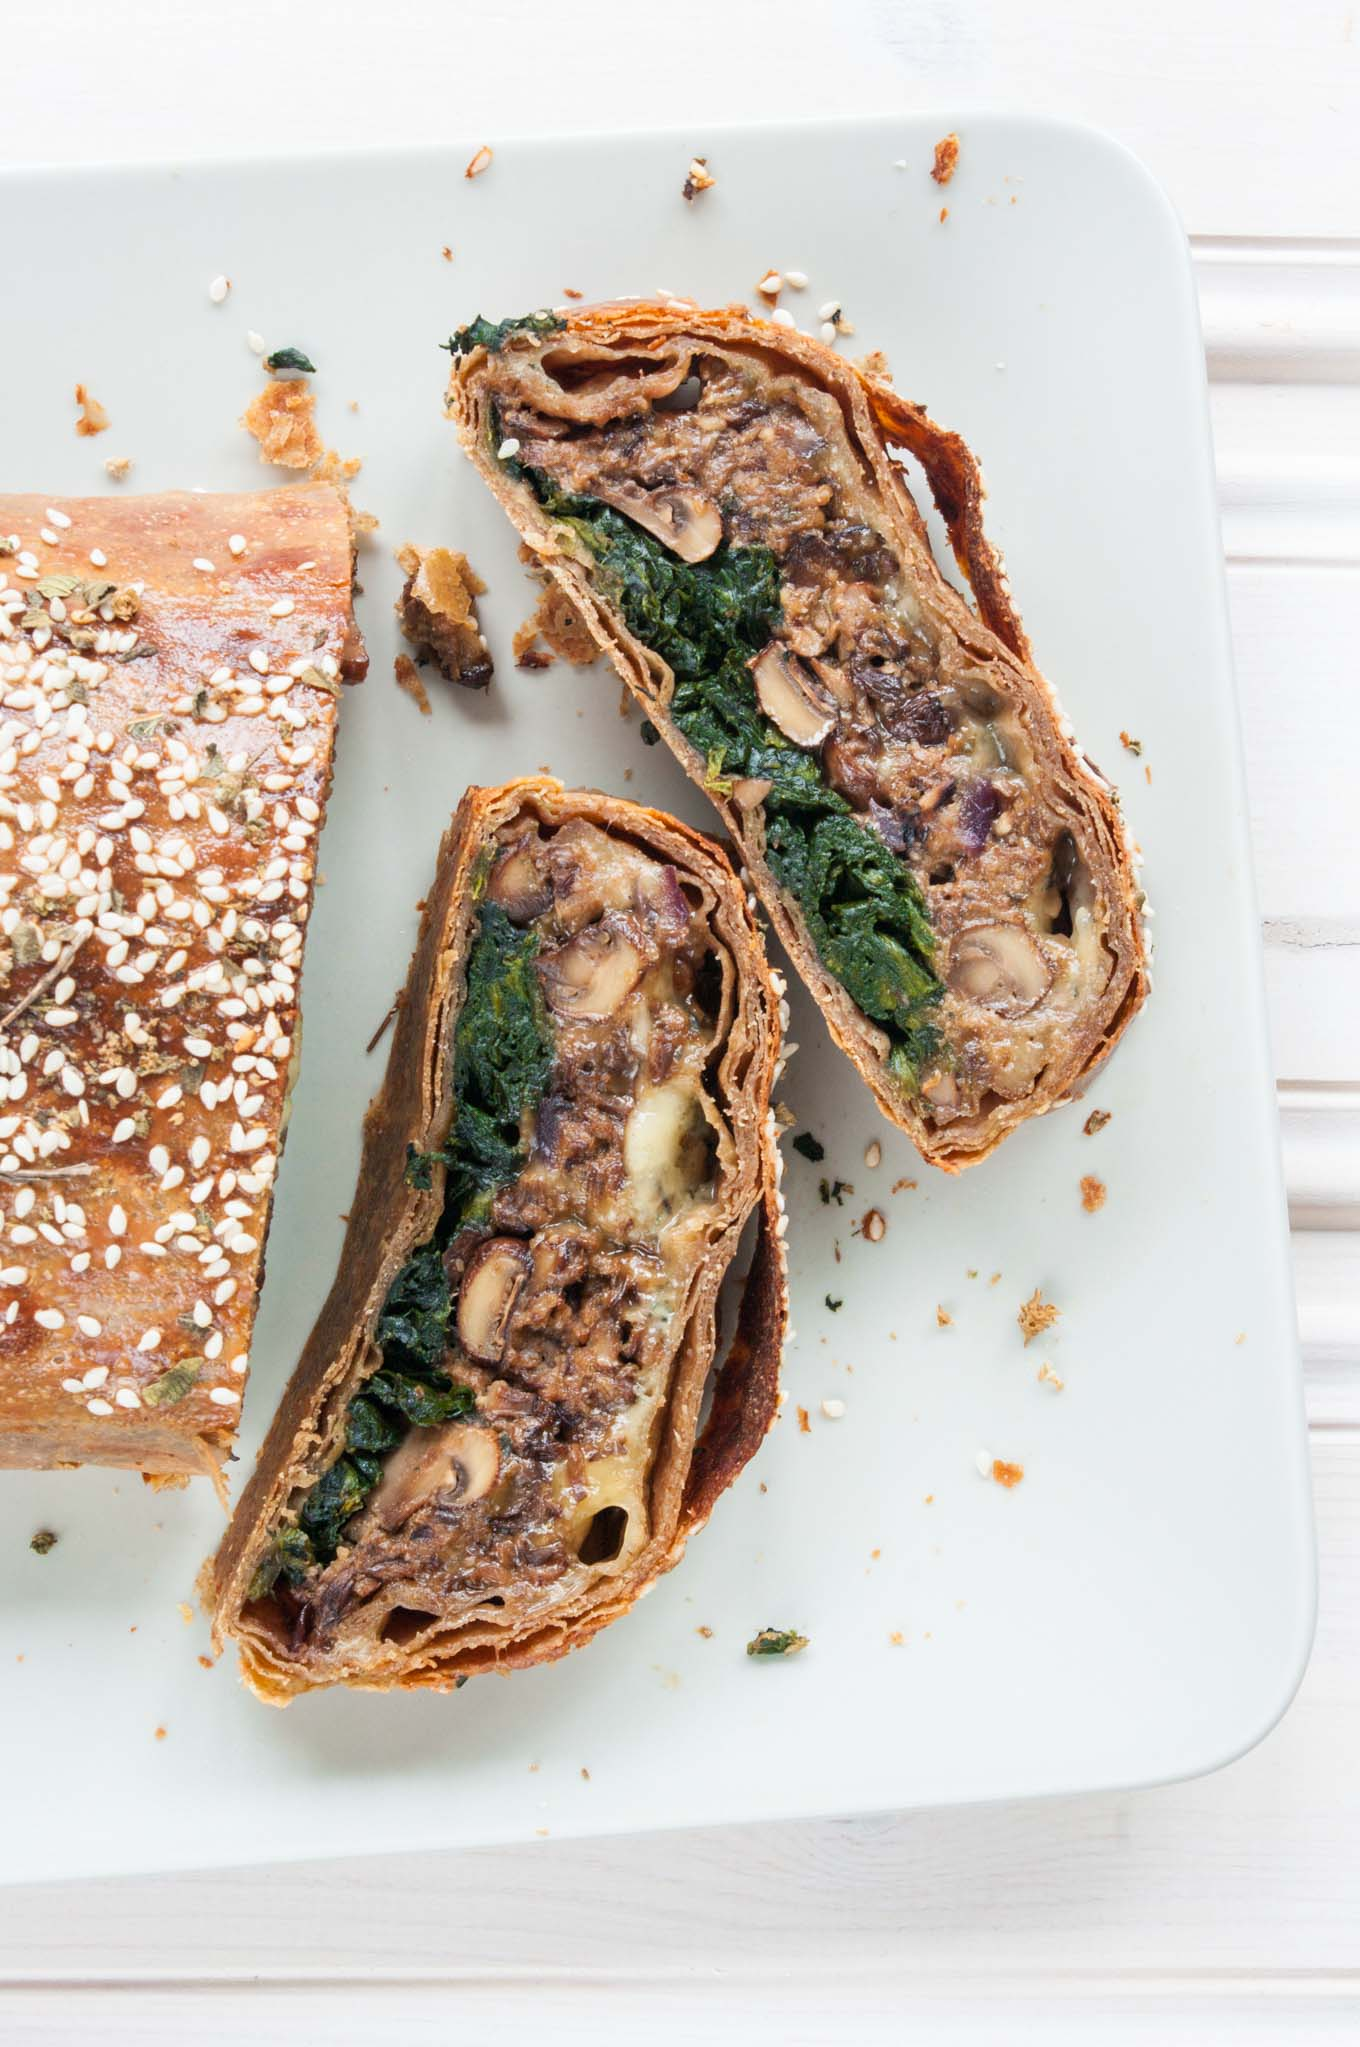 Vegetarian christmas recipes delicious from scratch mushroom wellington with spinach this spectacular mushroom wellington recipe is a fabulous vegetarian main course christmas forumfinder Choice Image